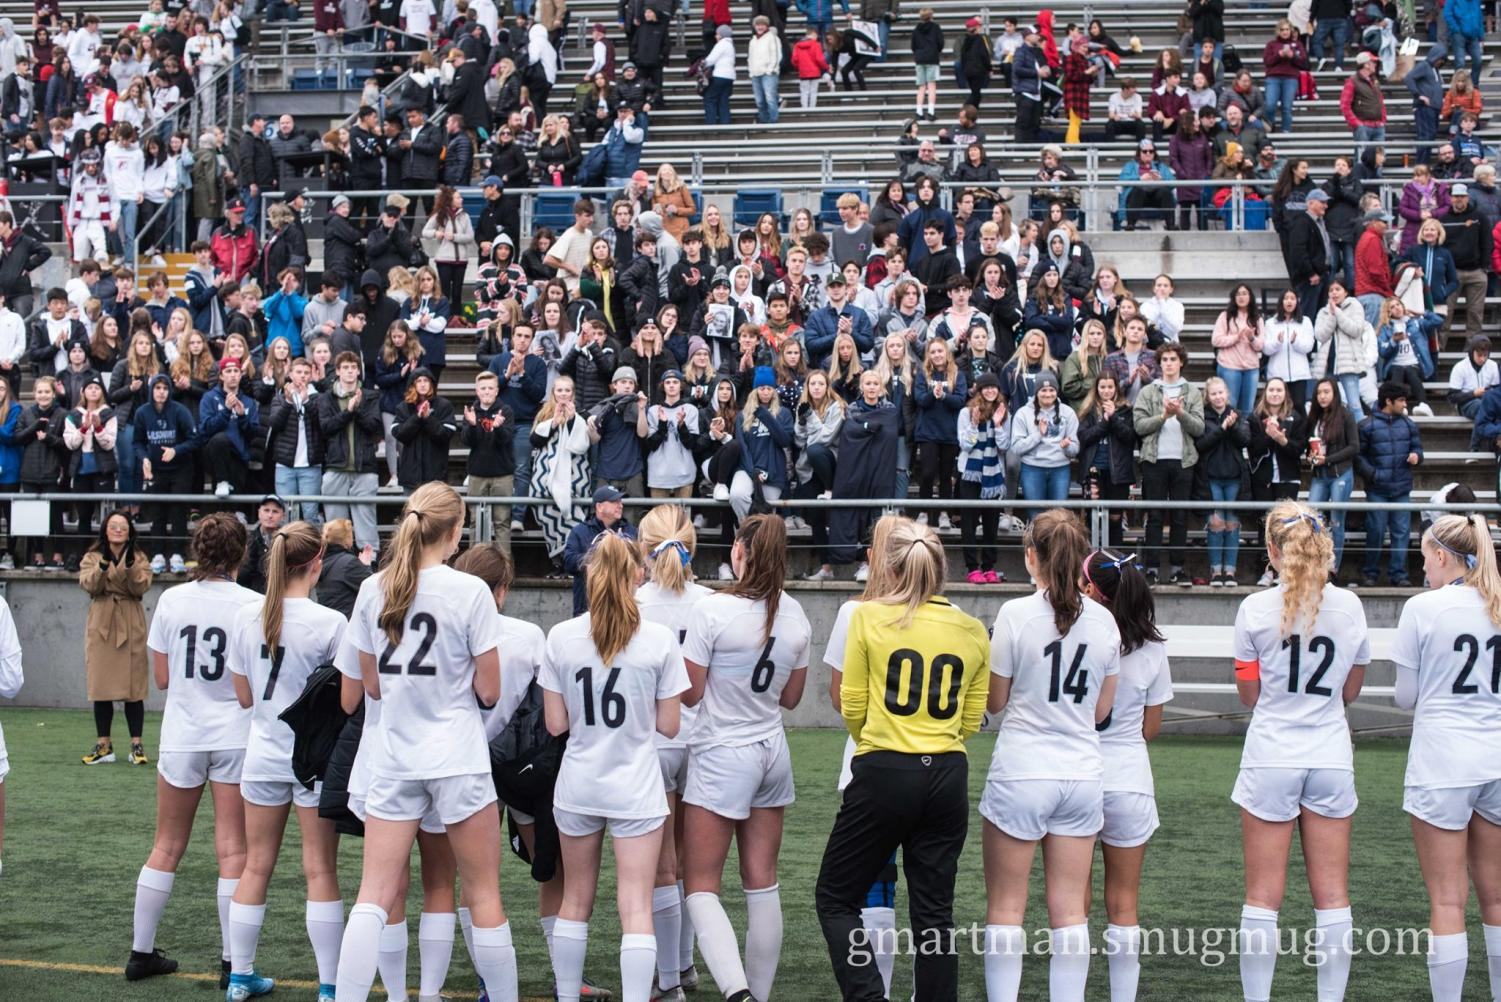 Girls fall to Crescent Valley in state championship